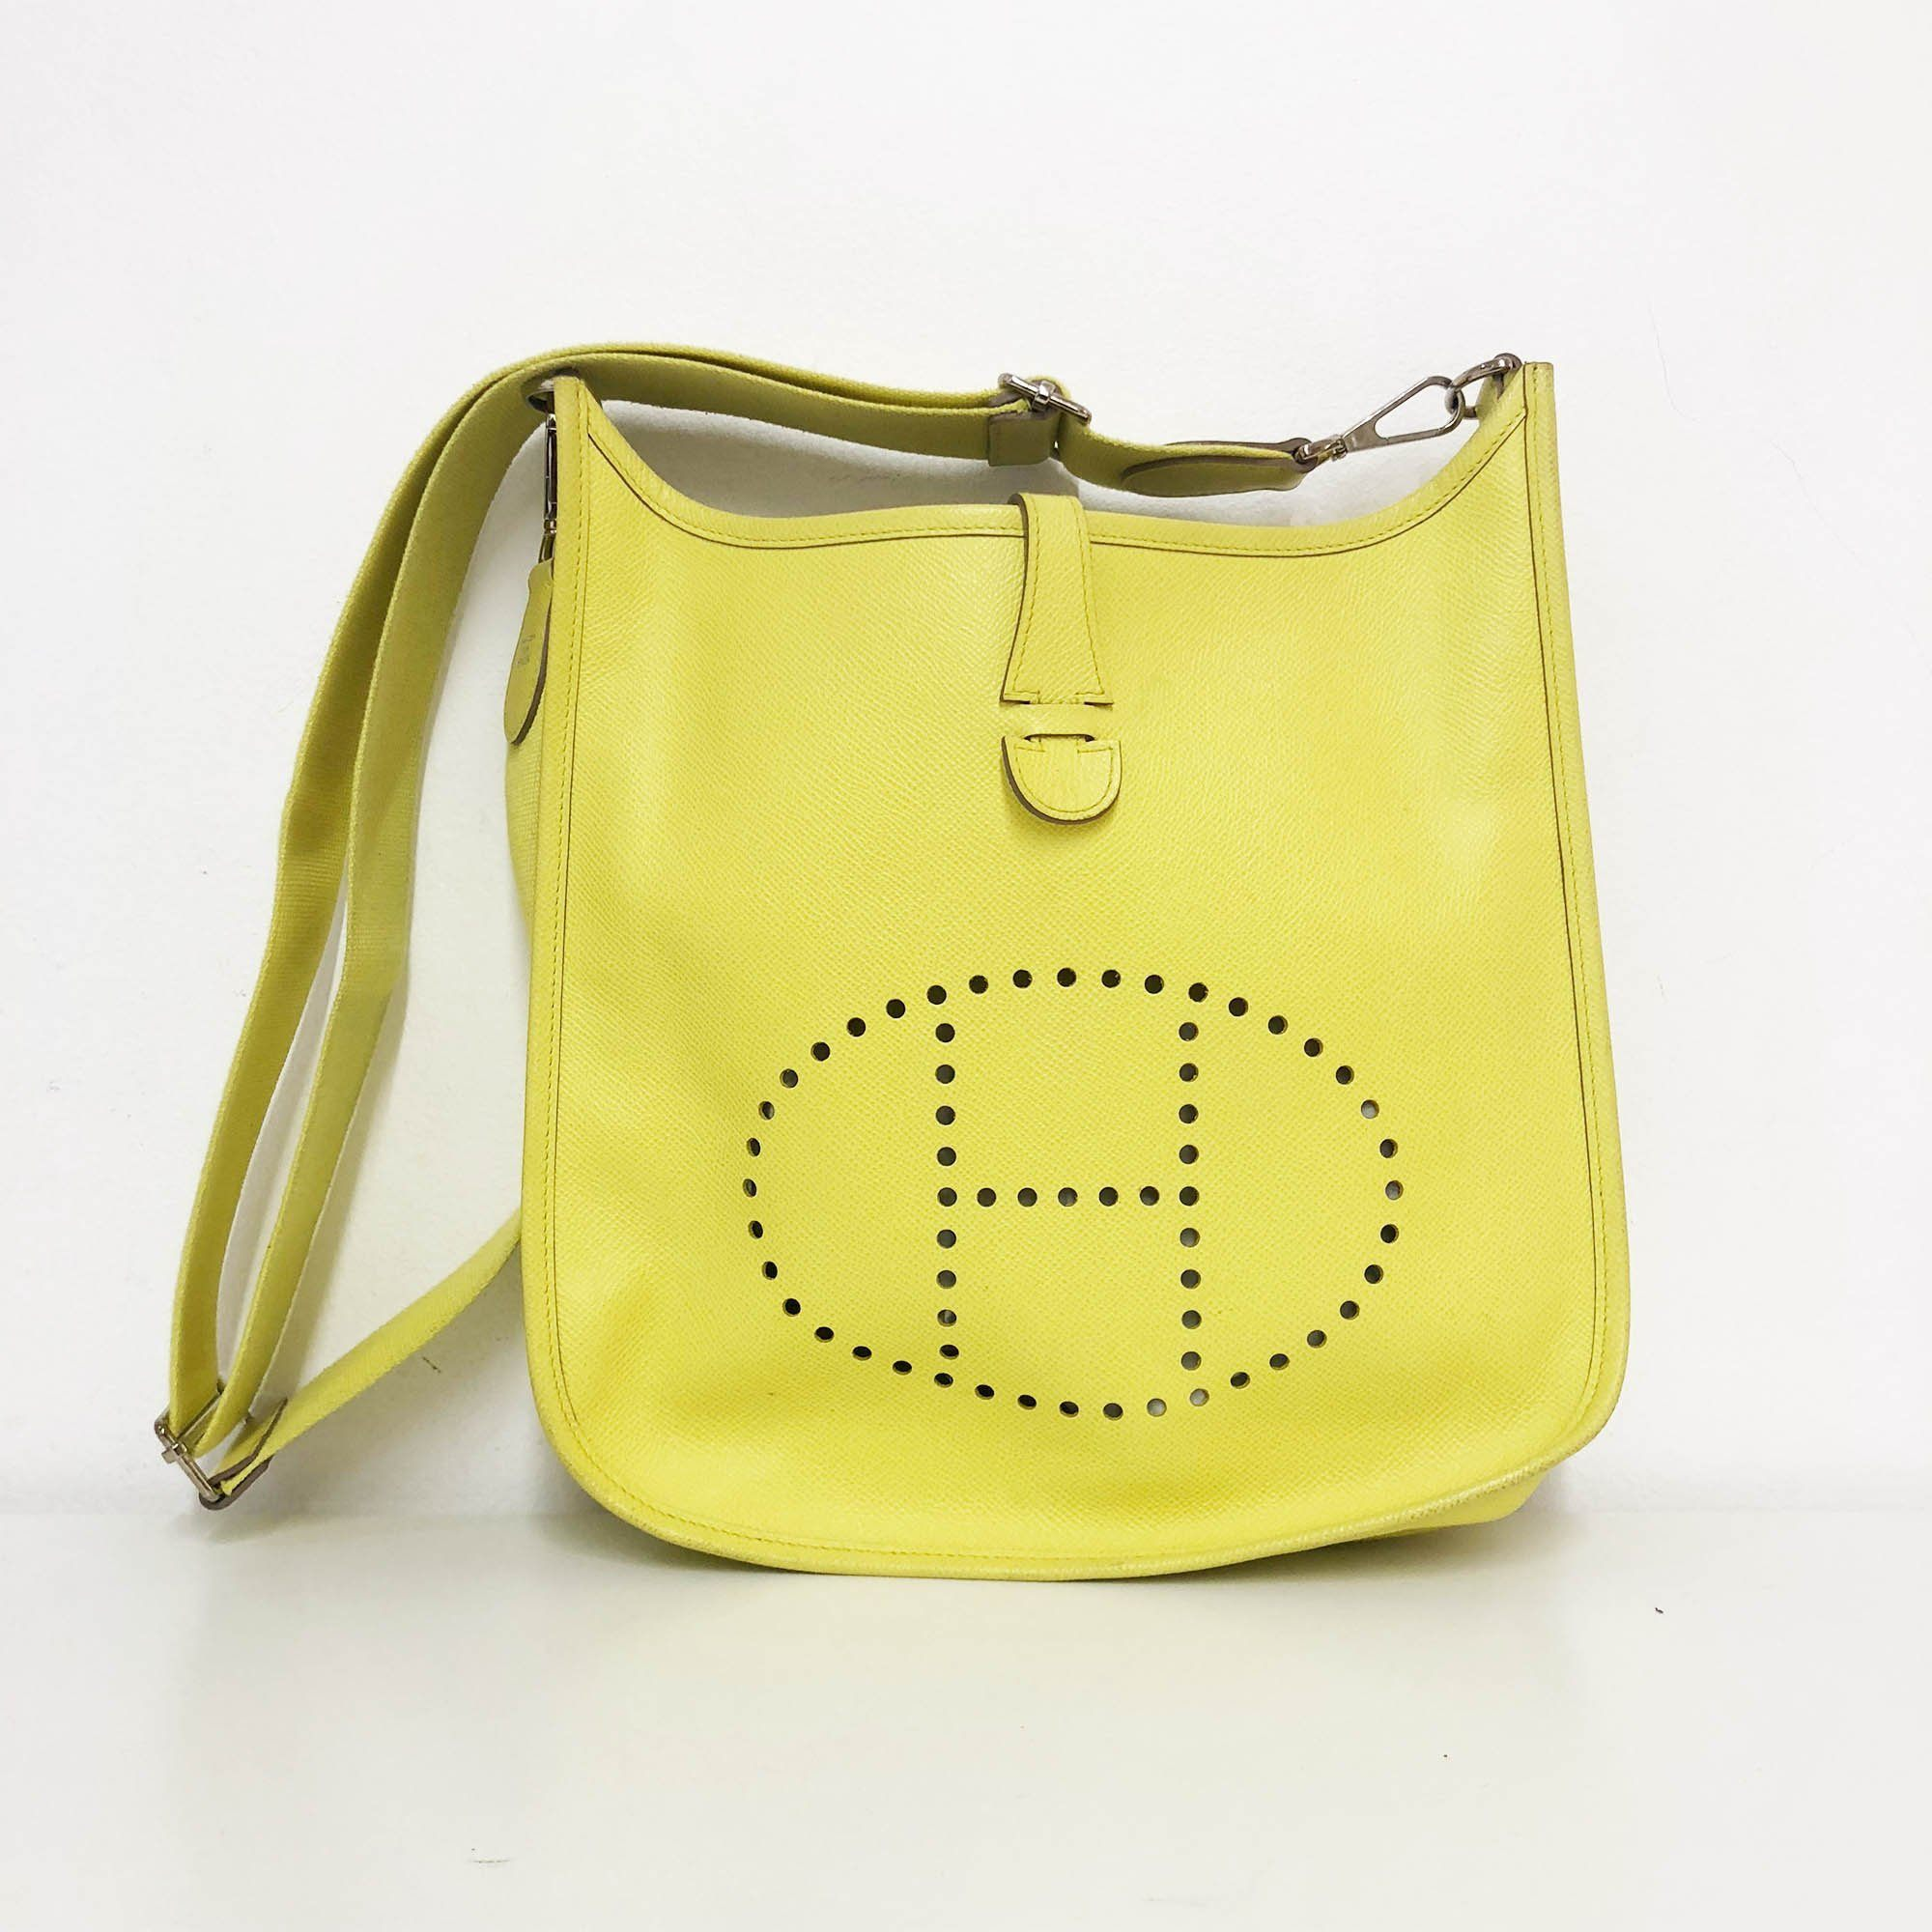 Hermes Evelyn III Bag